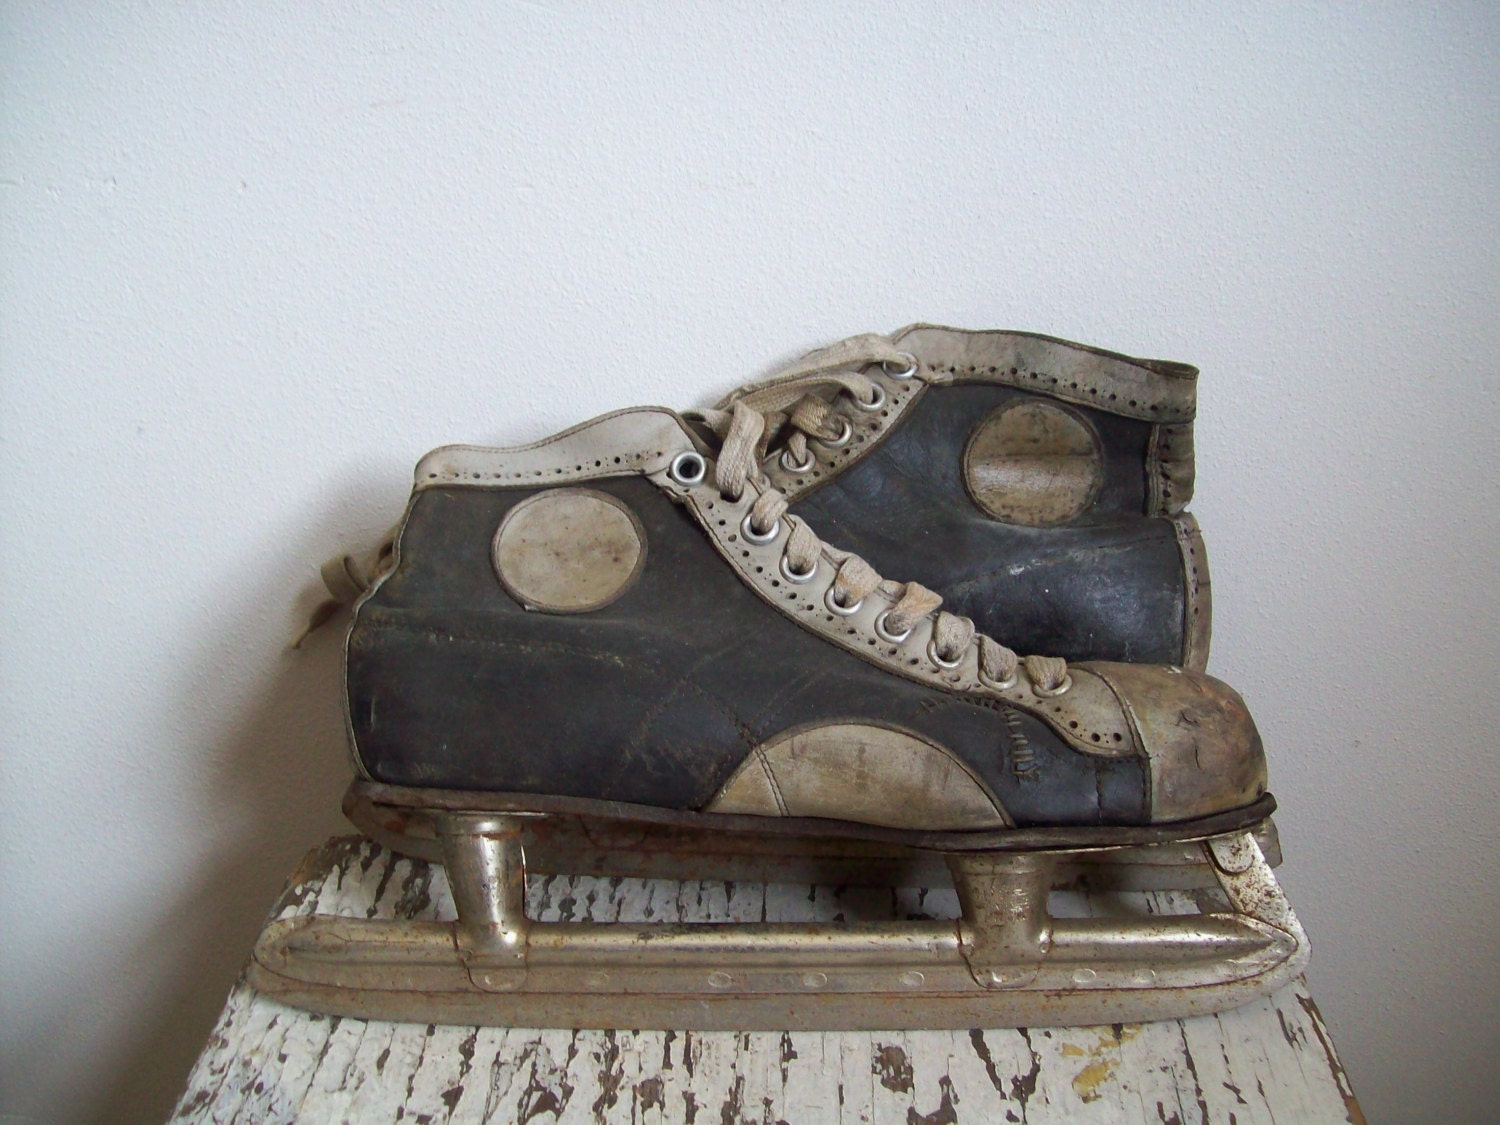 Vintage Leather Hockey Skates Union Hardware Company The Heart